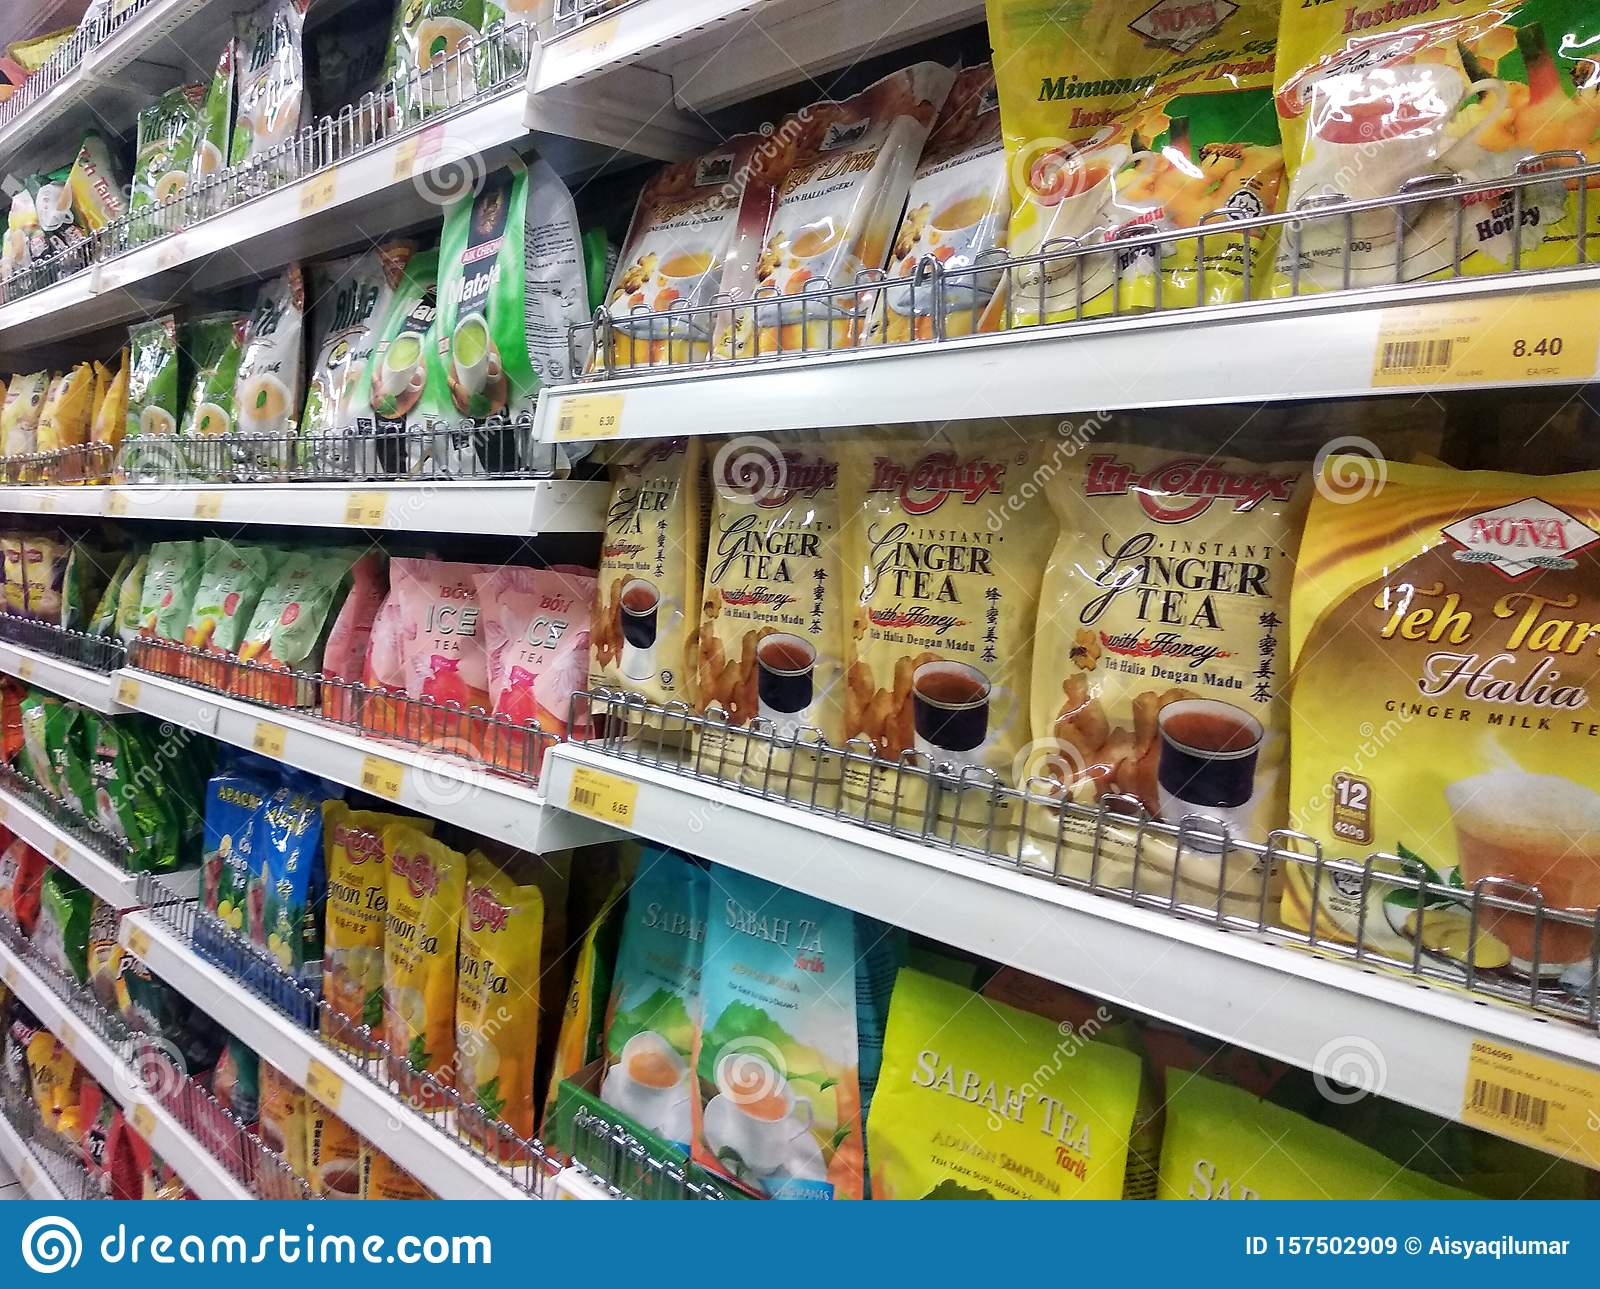 Tea powder is sold in commercial packages and displayed on supermarket shelves for sale.